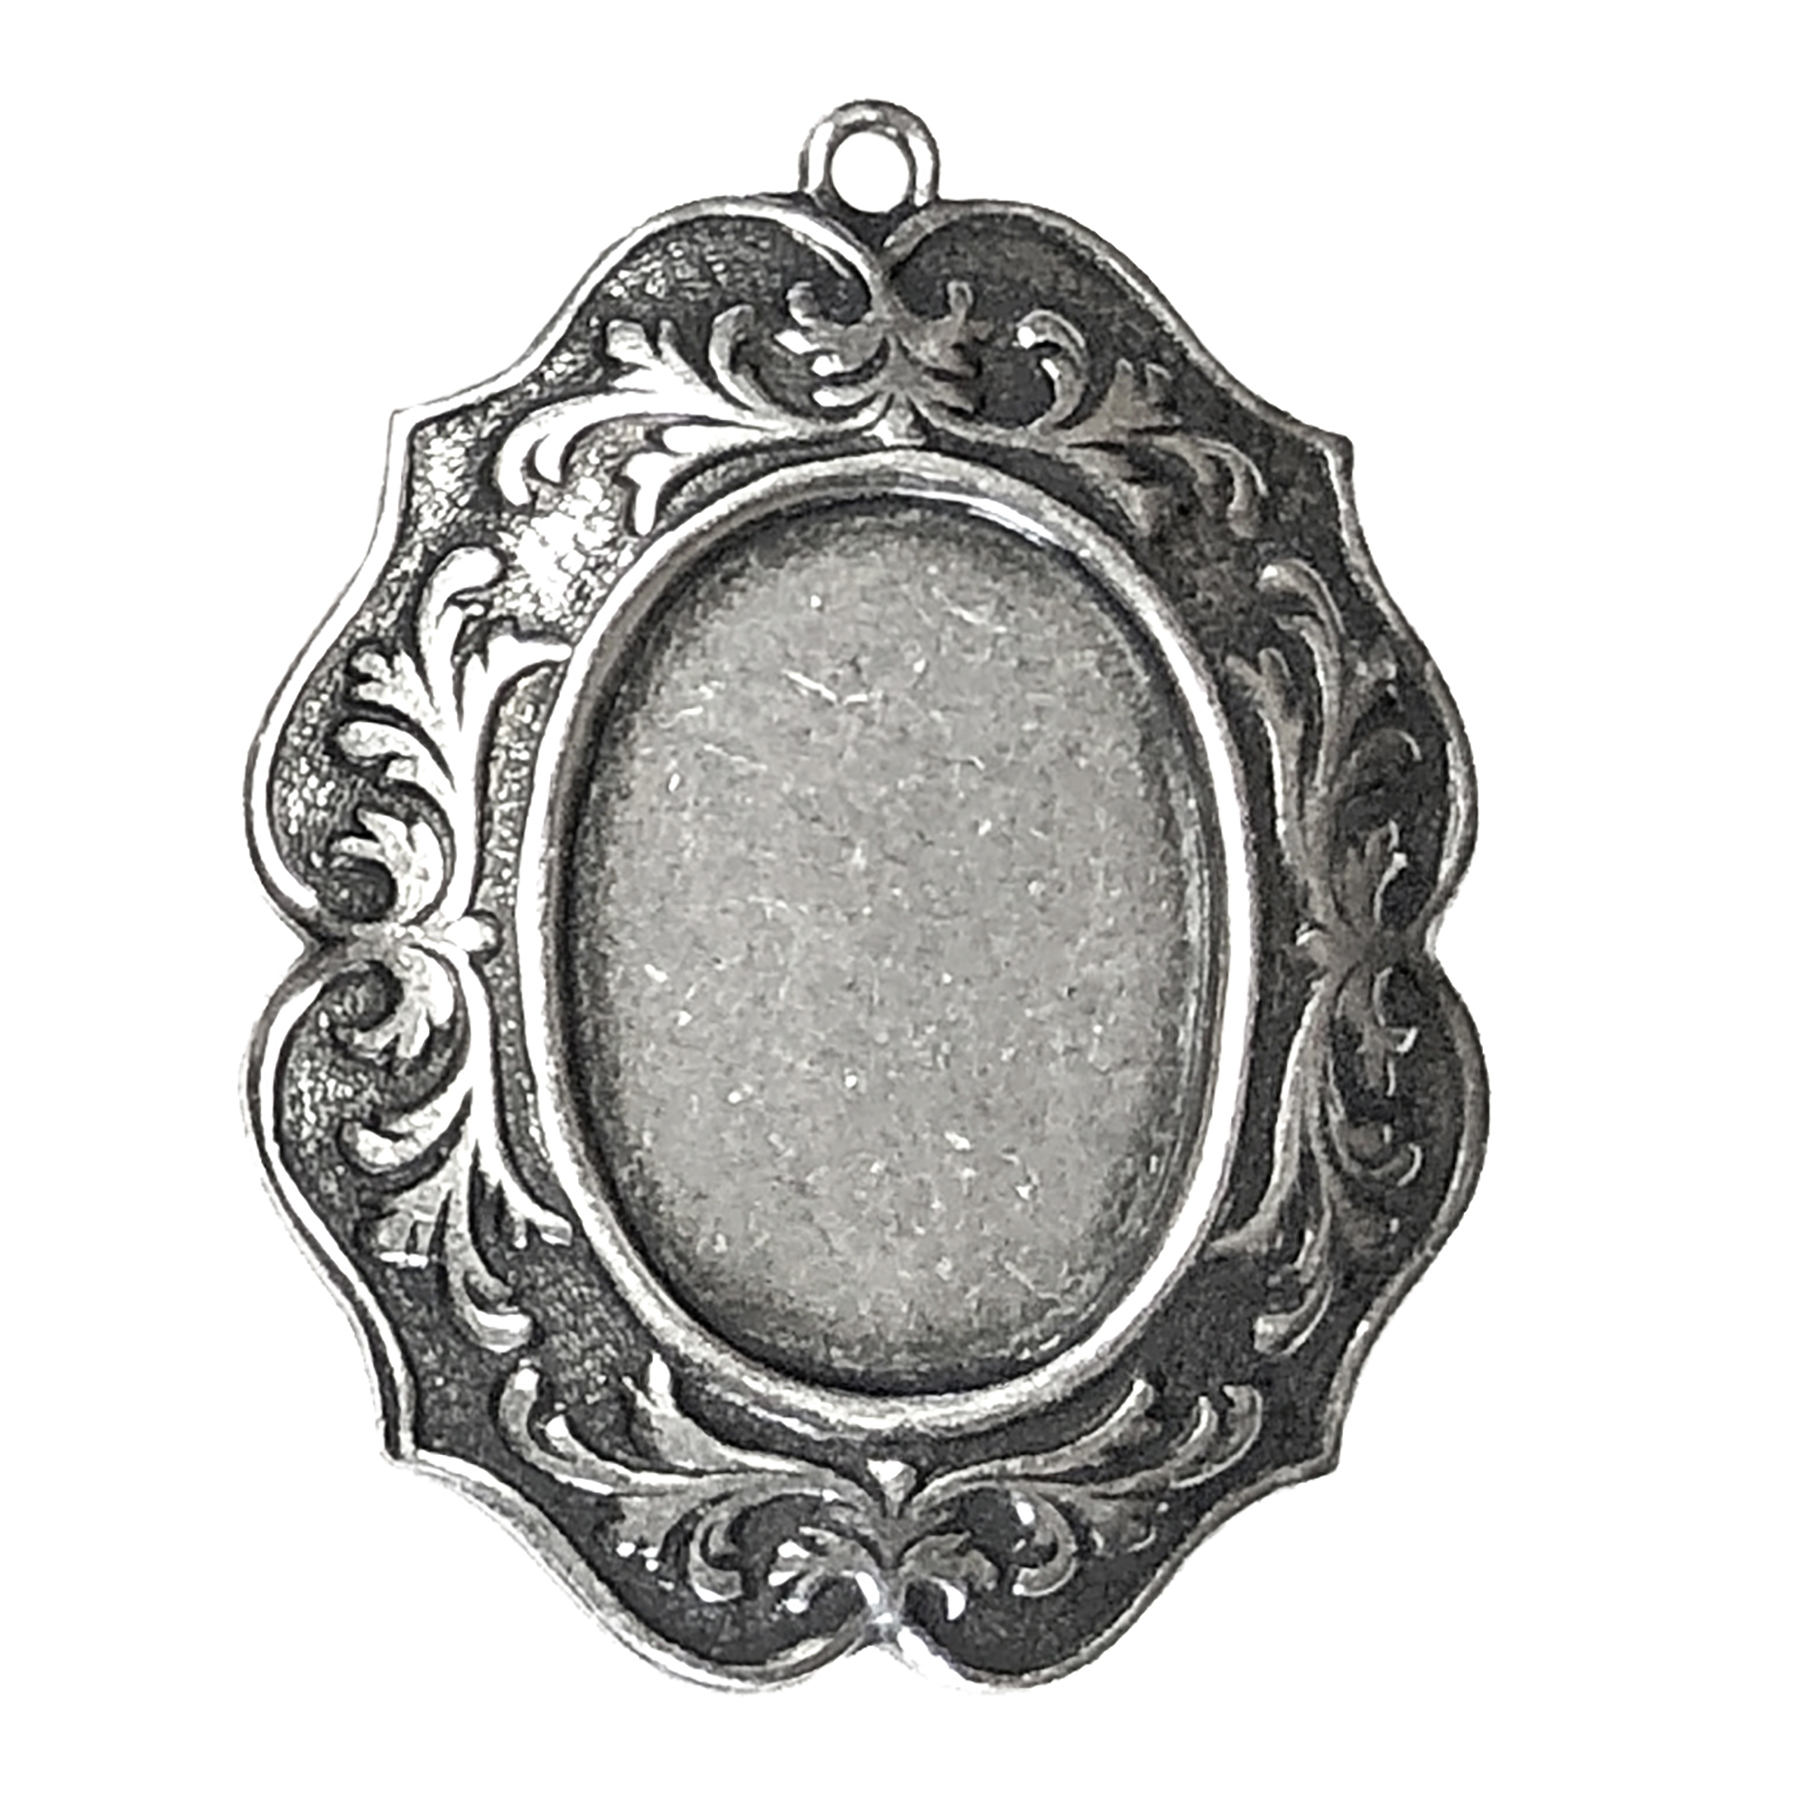 brass mount, cameo mount, silverplate, 06458, Victorian mount, B'sue Boutiques, US made jewelry supplies, vintage jewellery supplies, jewelry making supplies, silverware silverplate, antique silver, stone mount